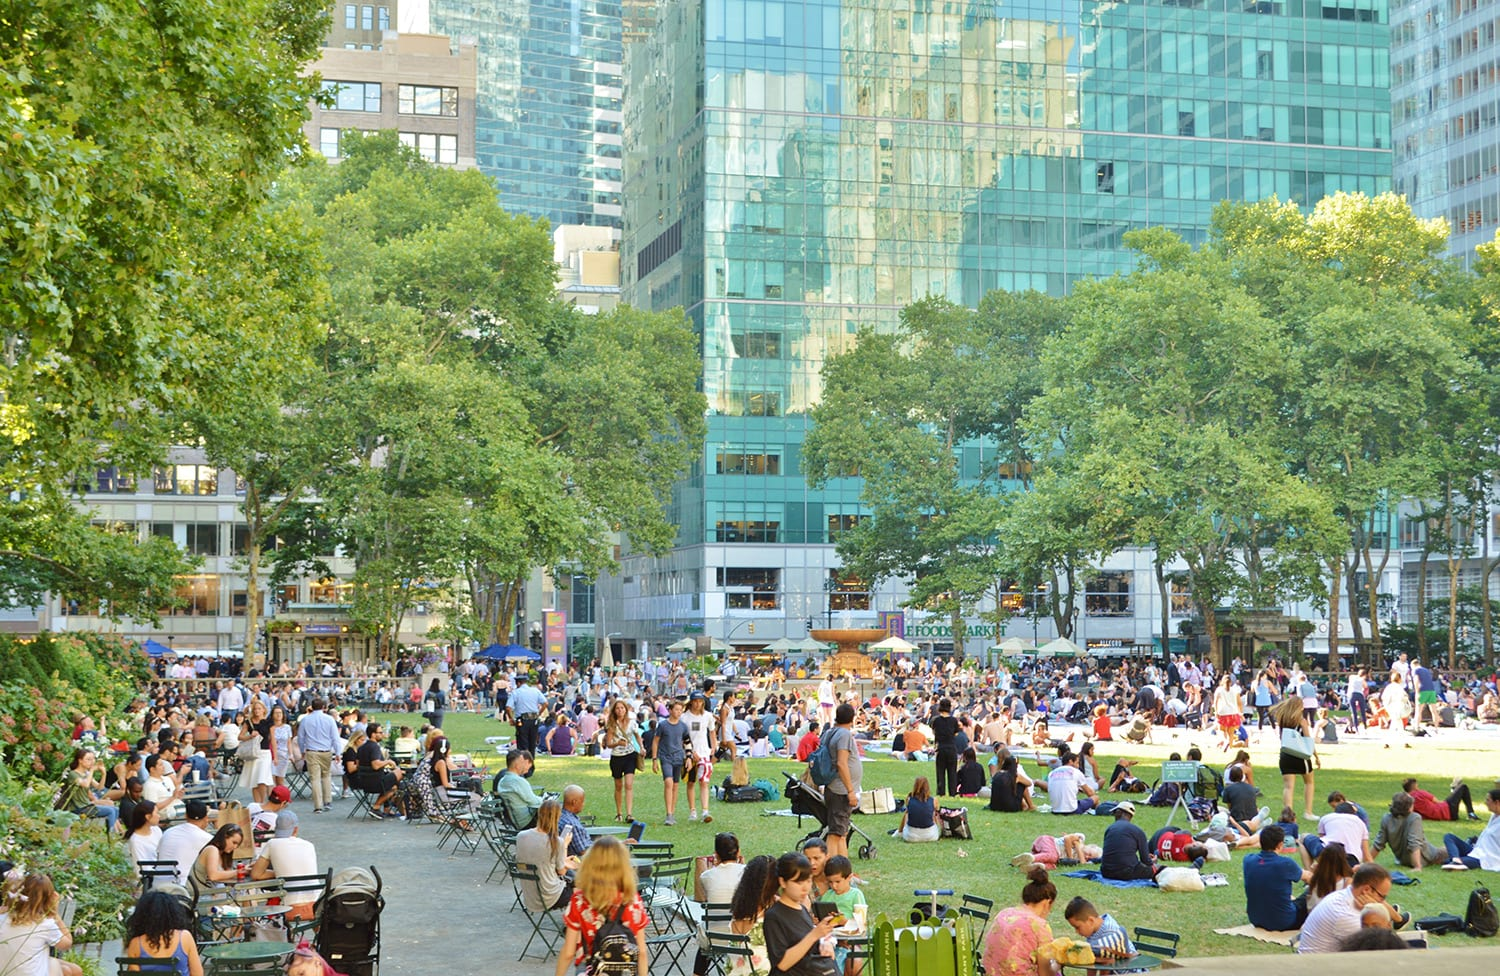 People sitting on lawn chairs at Bryant Park